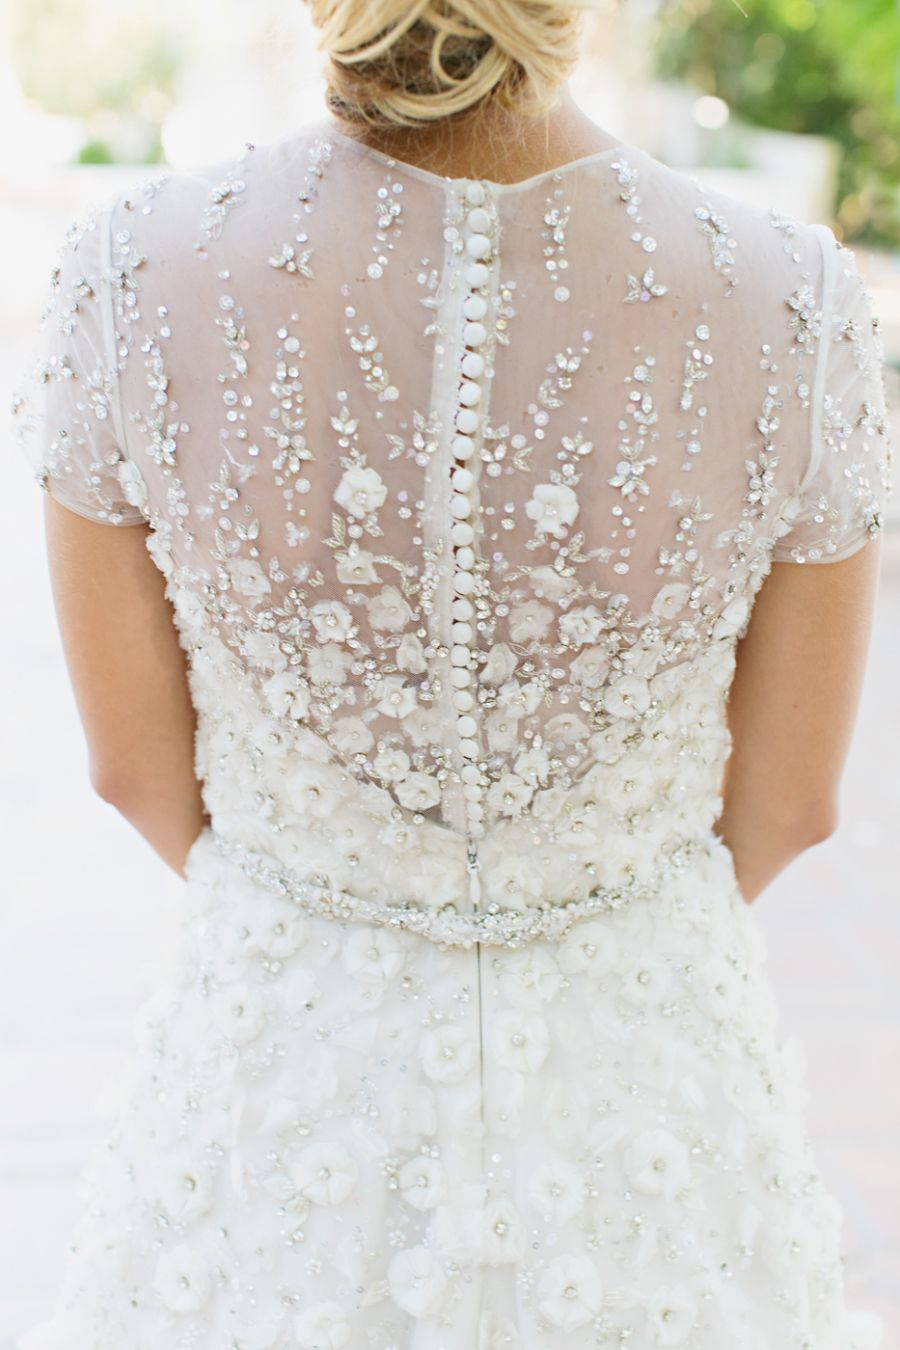 Best wedding dresses of all time  Elegant Summer Wedding Inspiration at Rancho Las Lomas  The